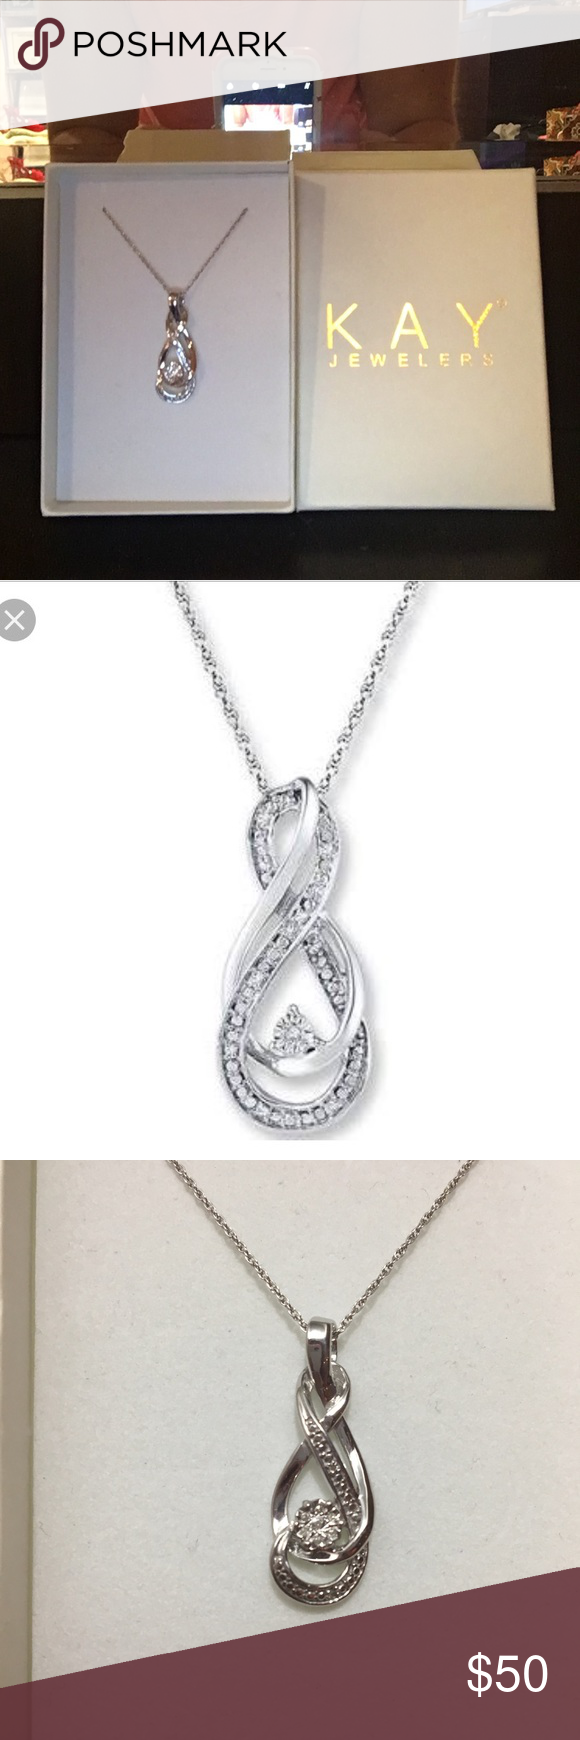 jewelers ct black white tw infinity heart caymancode necklace k kay gold diamonds